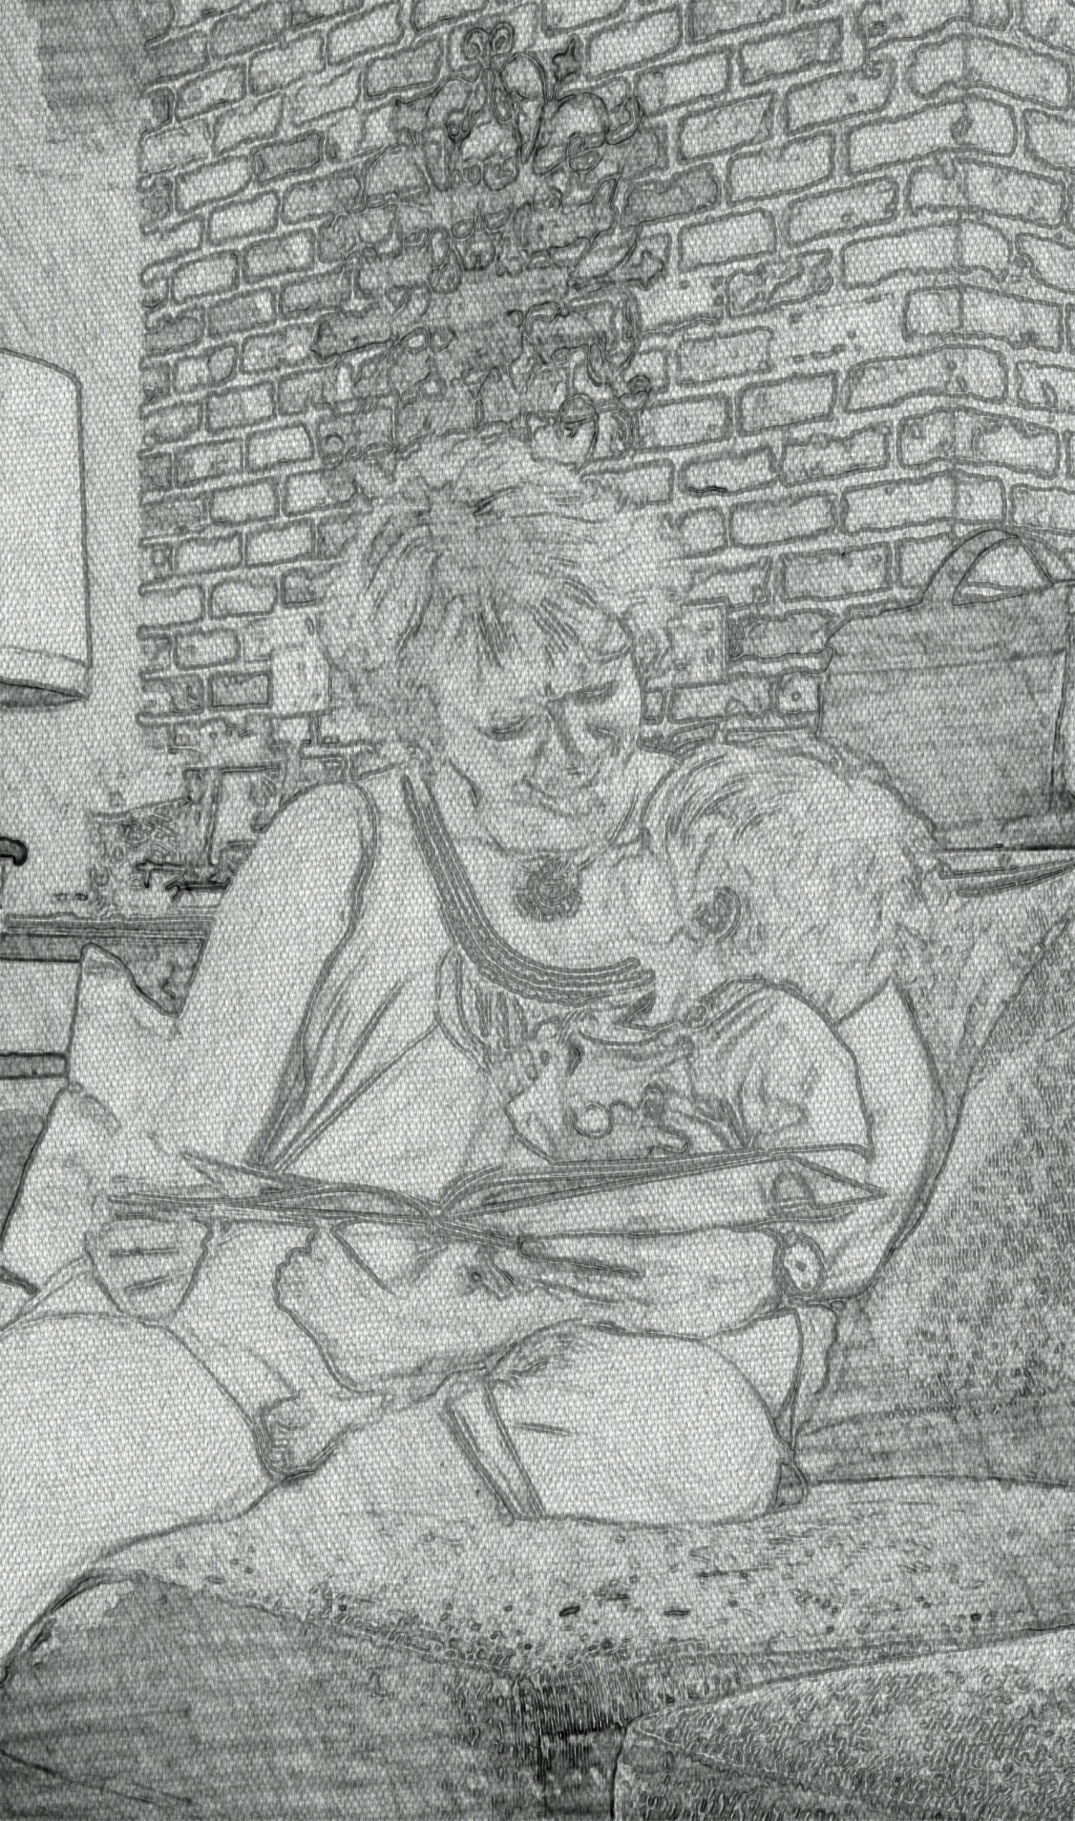 Reading with Carter